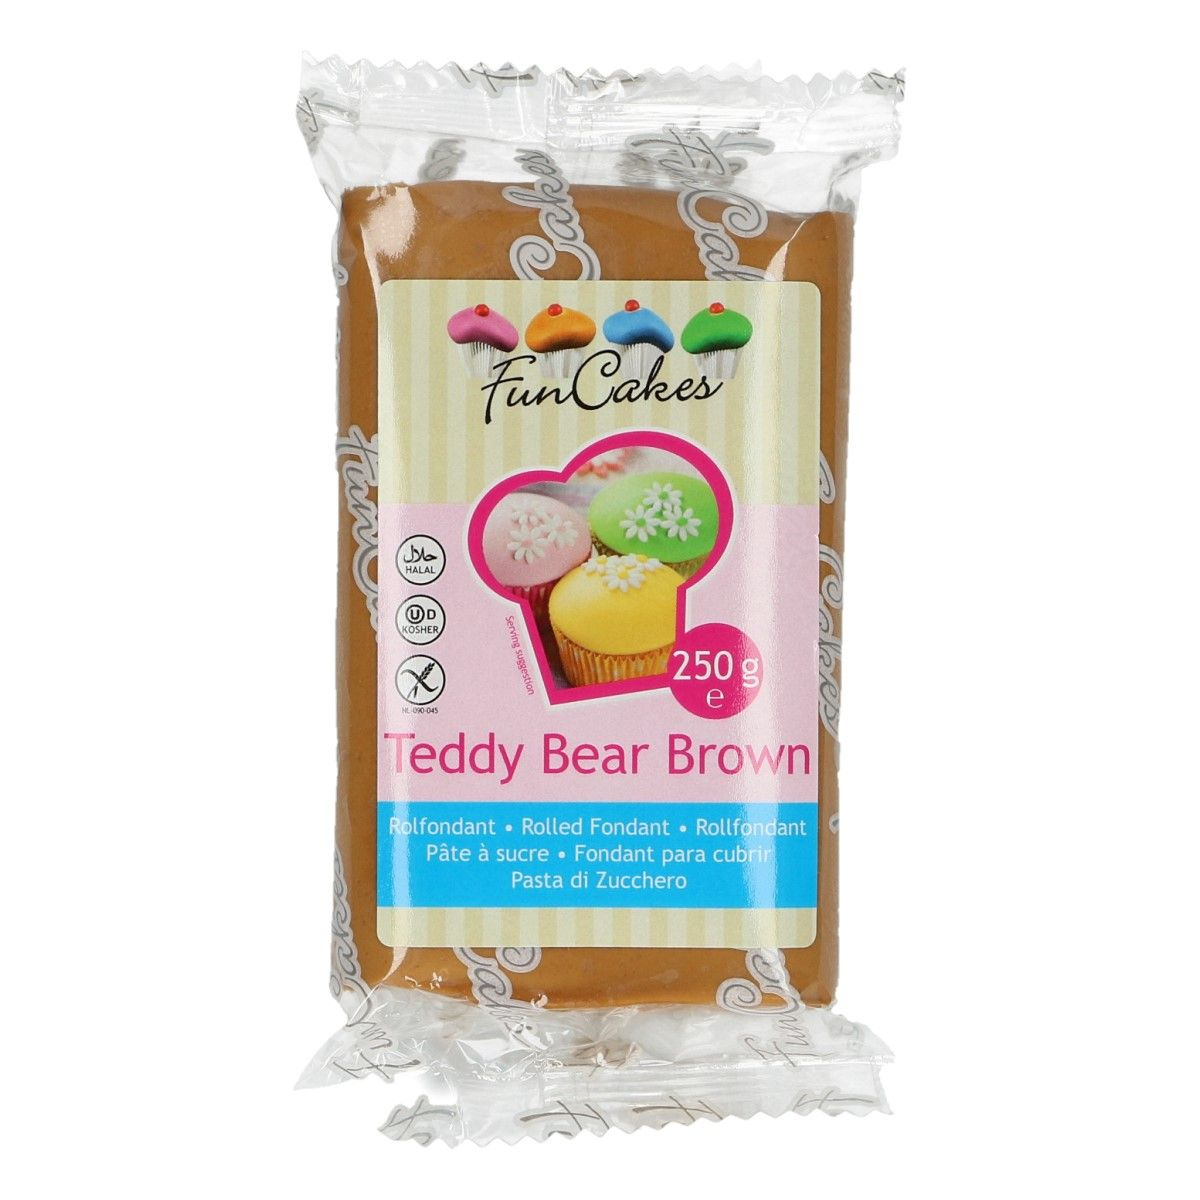 FunCakes Teddy Bear Brown